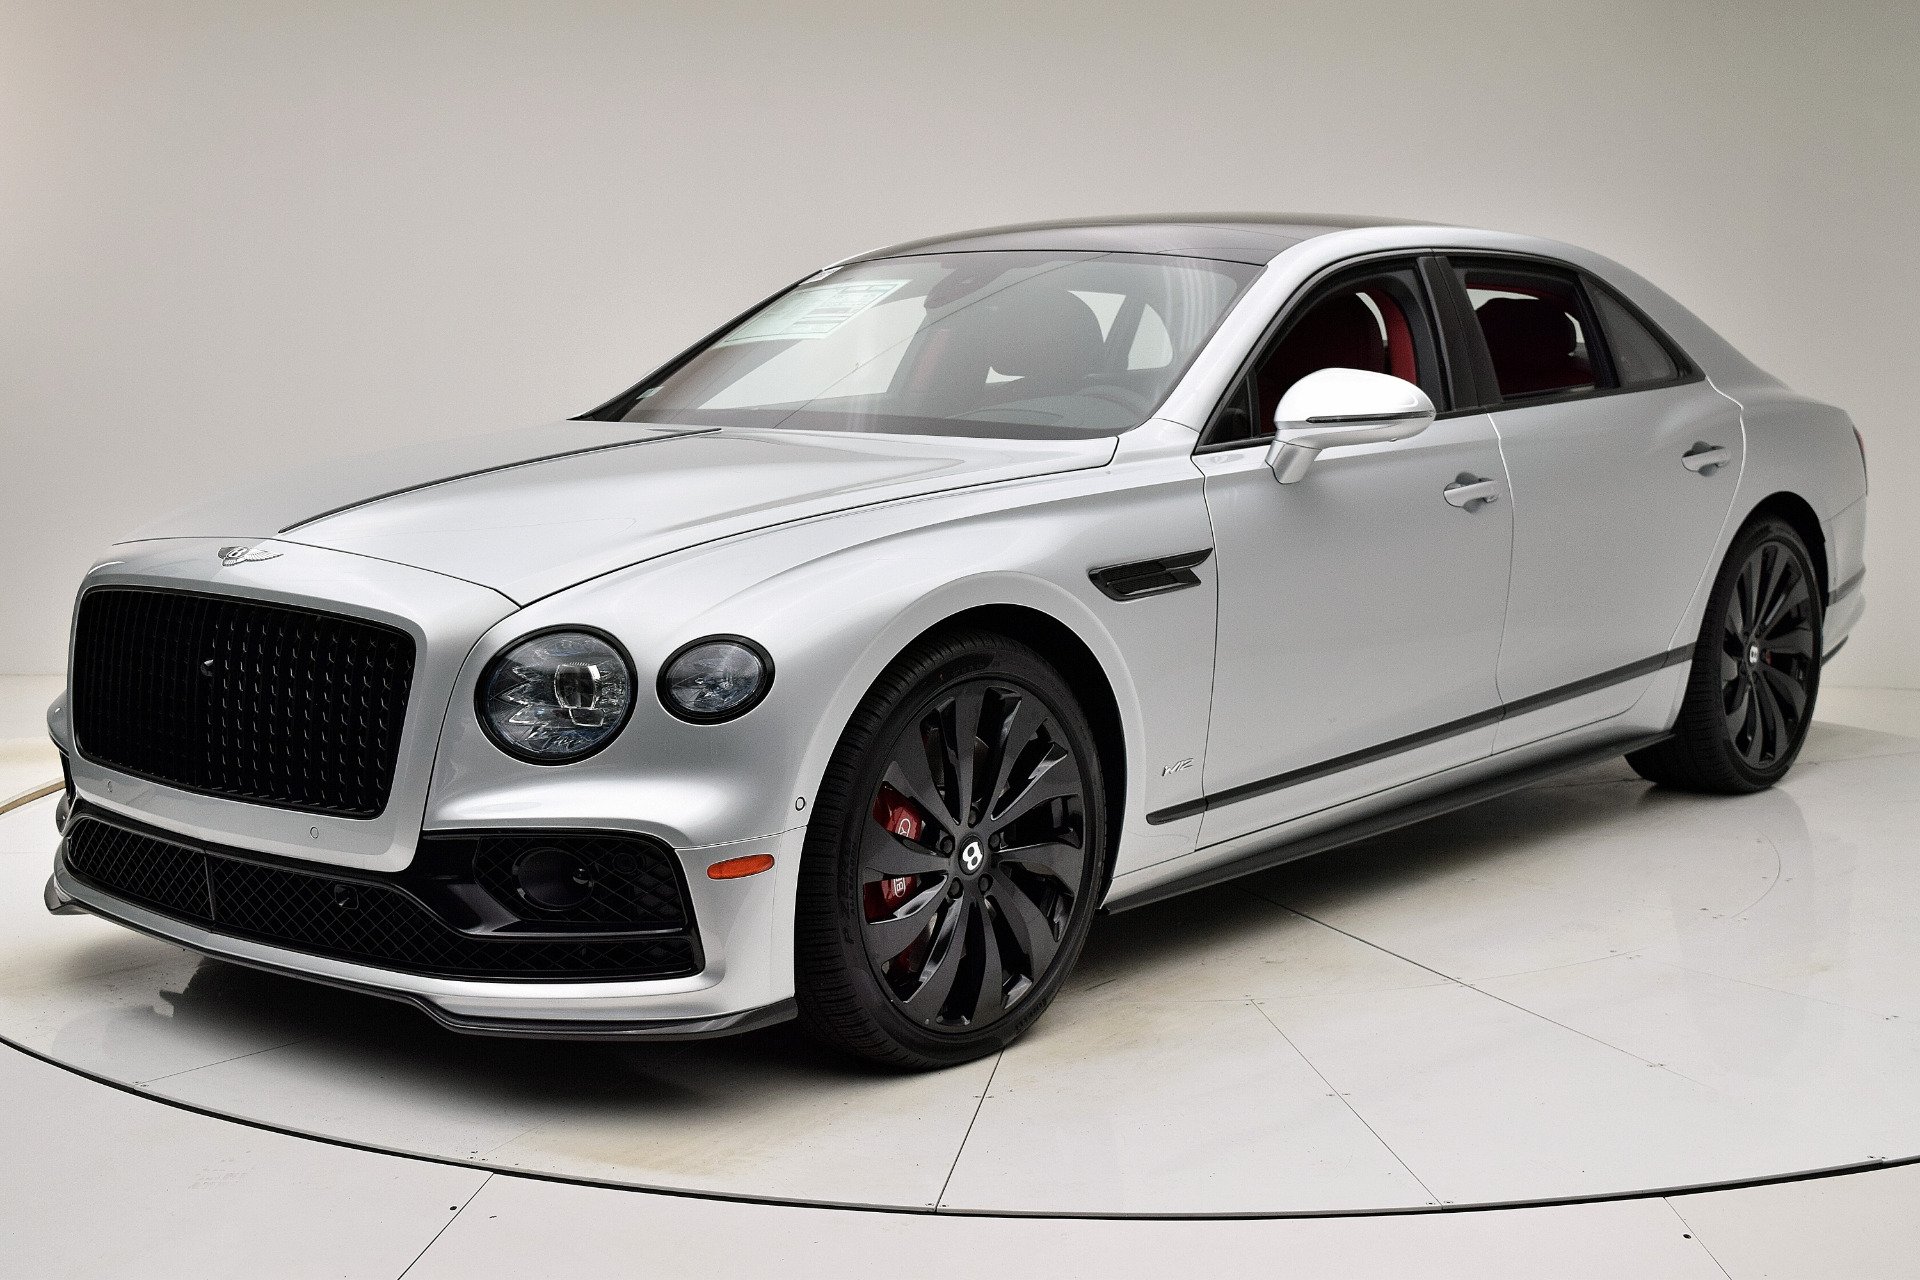 New 2021 Bentley Flying Spur W12 for sale Call for price at Bentley Palmyra N.J. in Palmyra NJ 08065 2